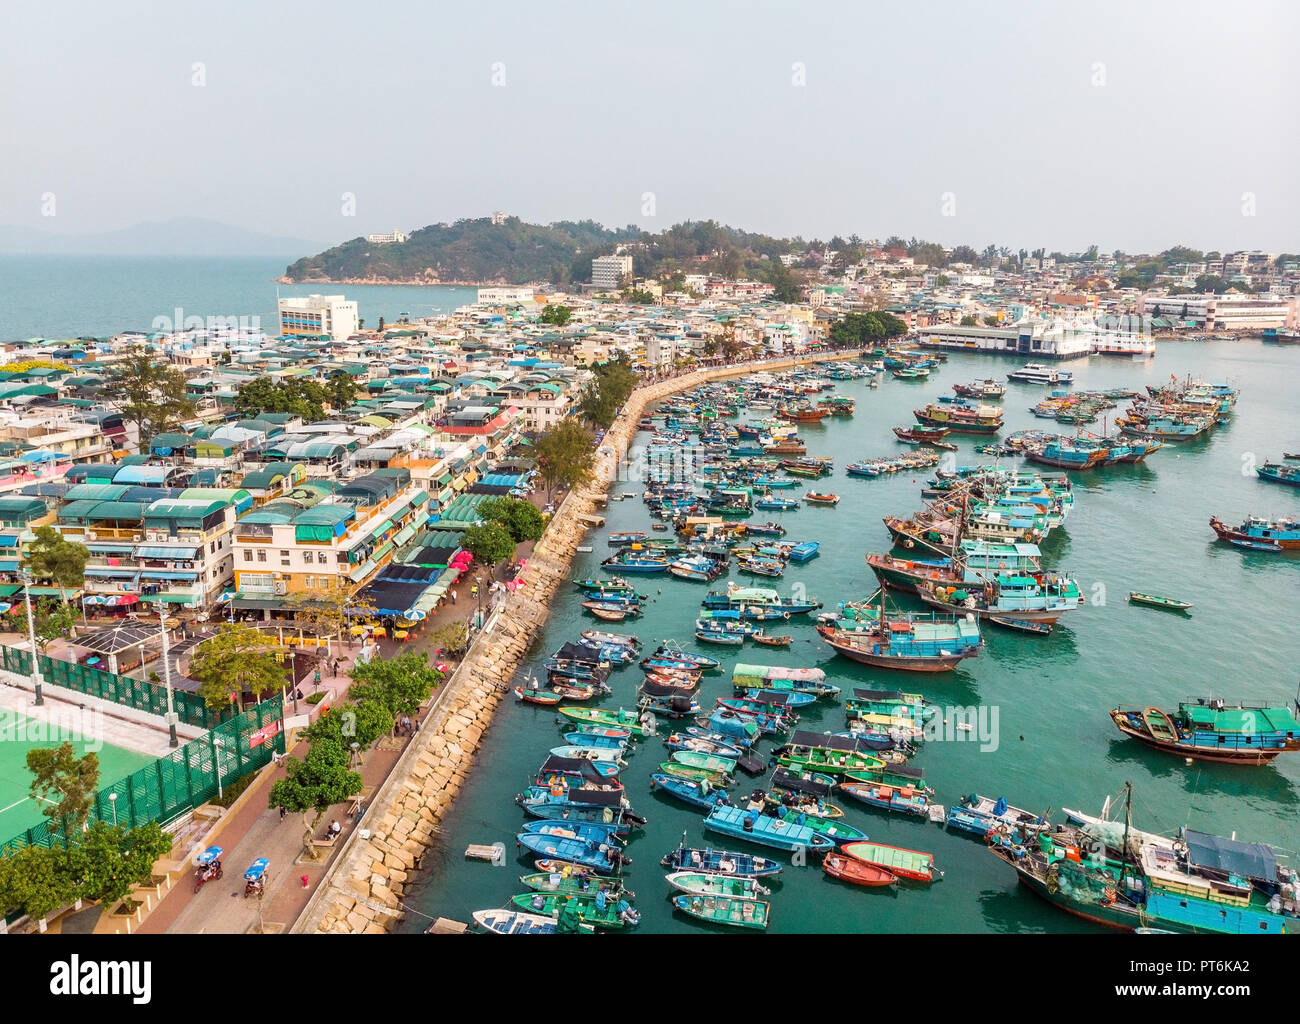 Cheung Chau Island Aerial Shot, Hong Kong Stock Photo